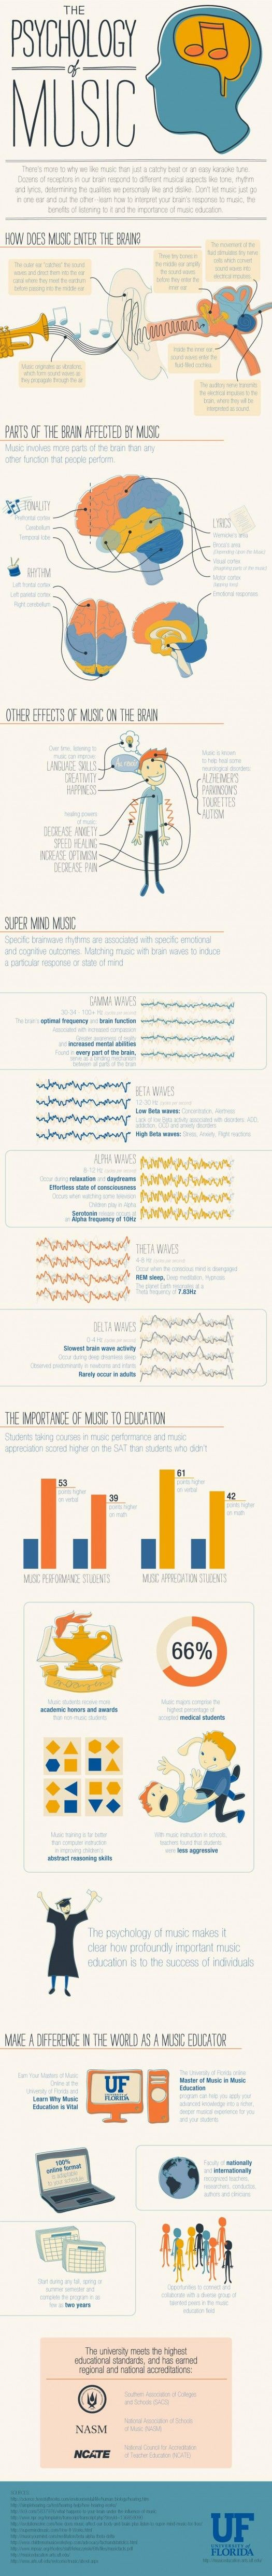 This Is Your Brain On Music [Infographic] How #music enters the brain, and what it does when it gets there. | Univ. of Florida via PopSci #k12 #education